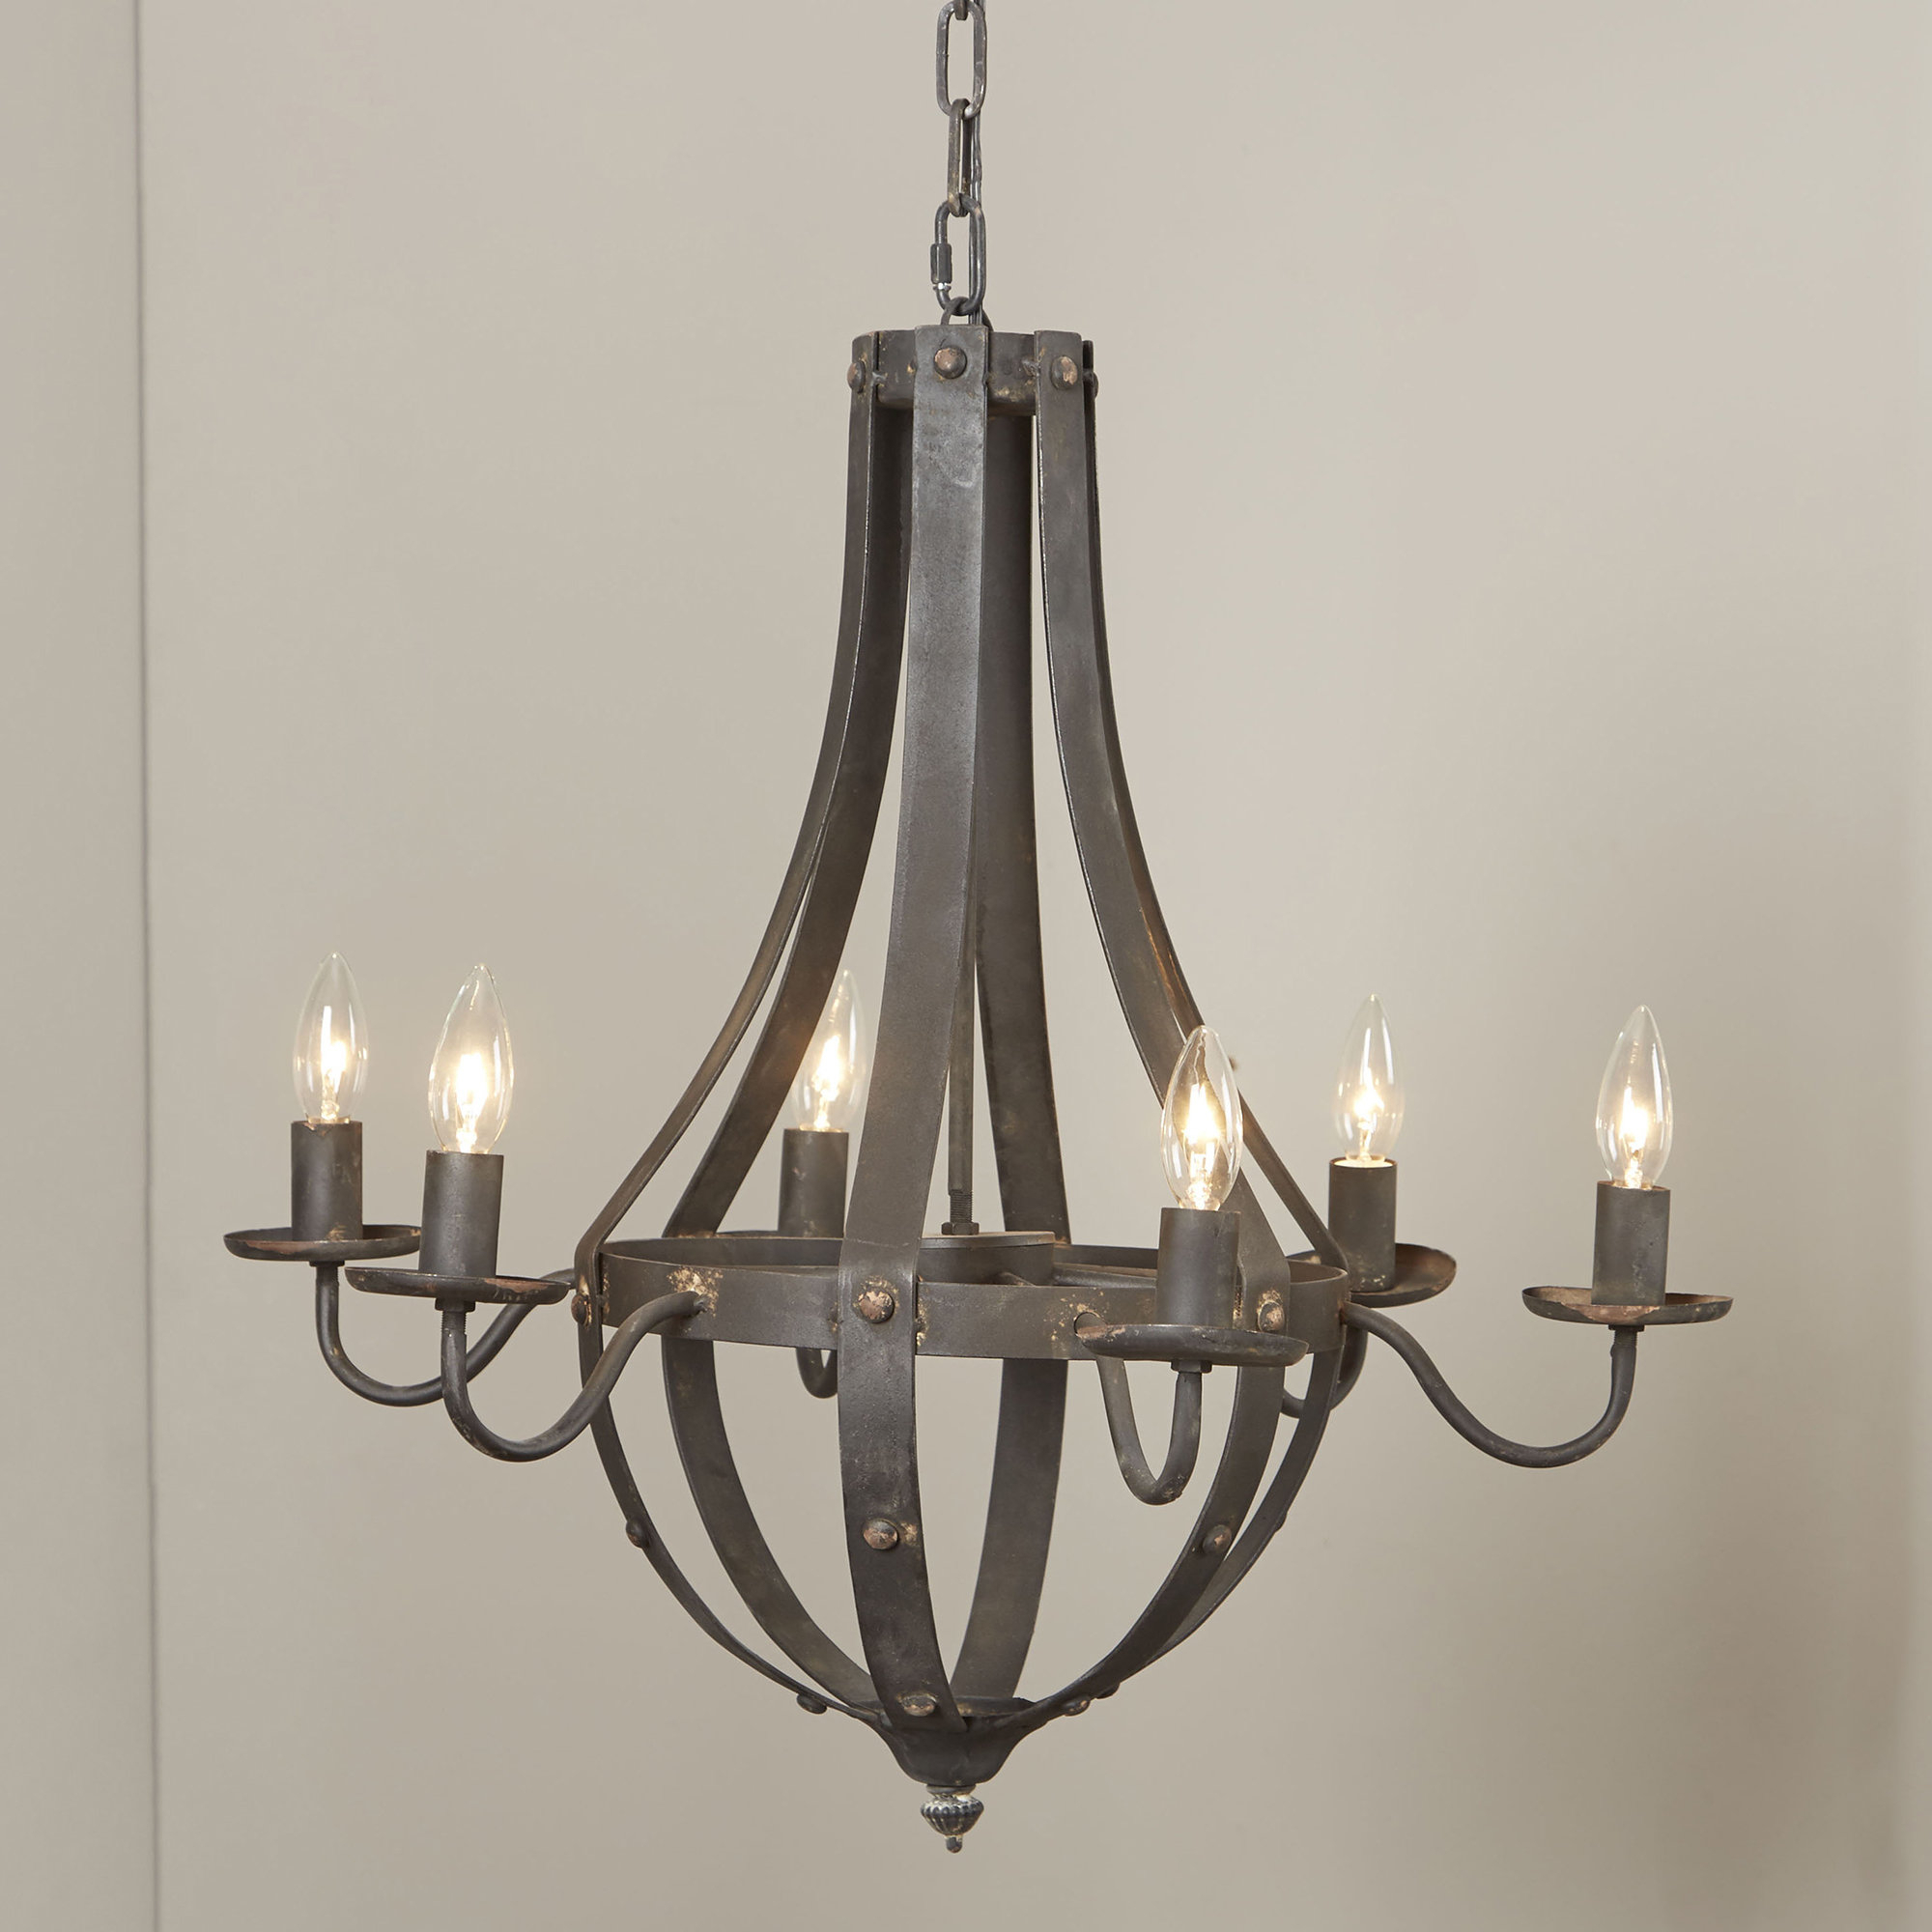 Kenna 5 Light Empire Chandeliers Within 2019 Foulds 6 Light Empire Chandelier (Gallery 12 of 25)